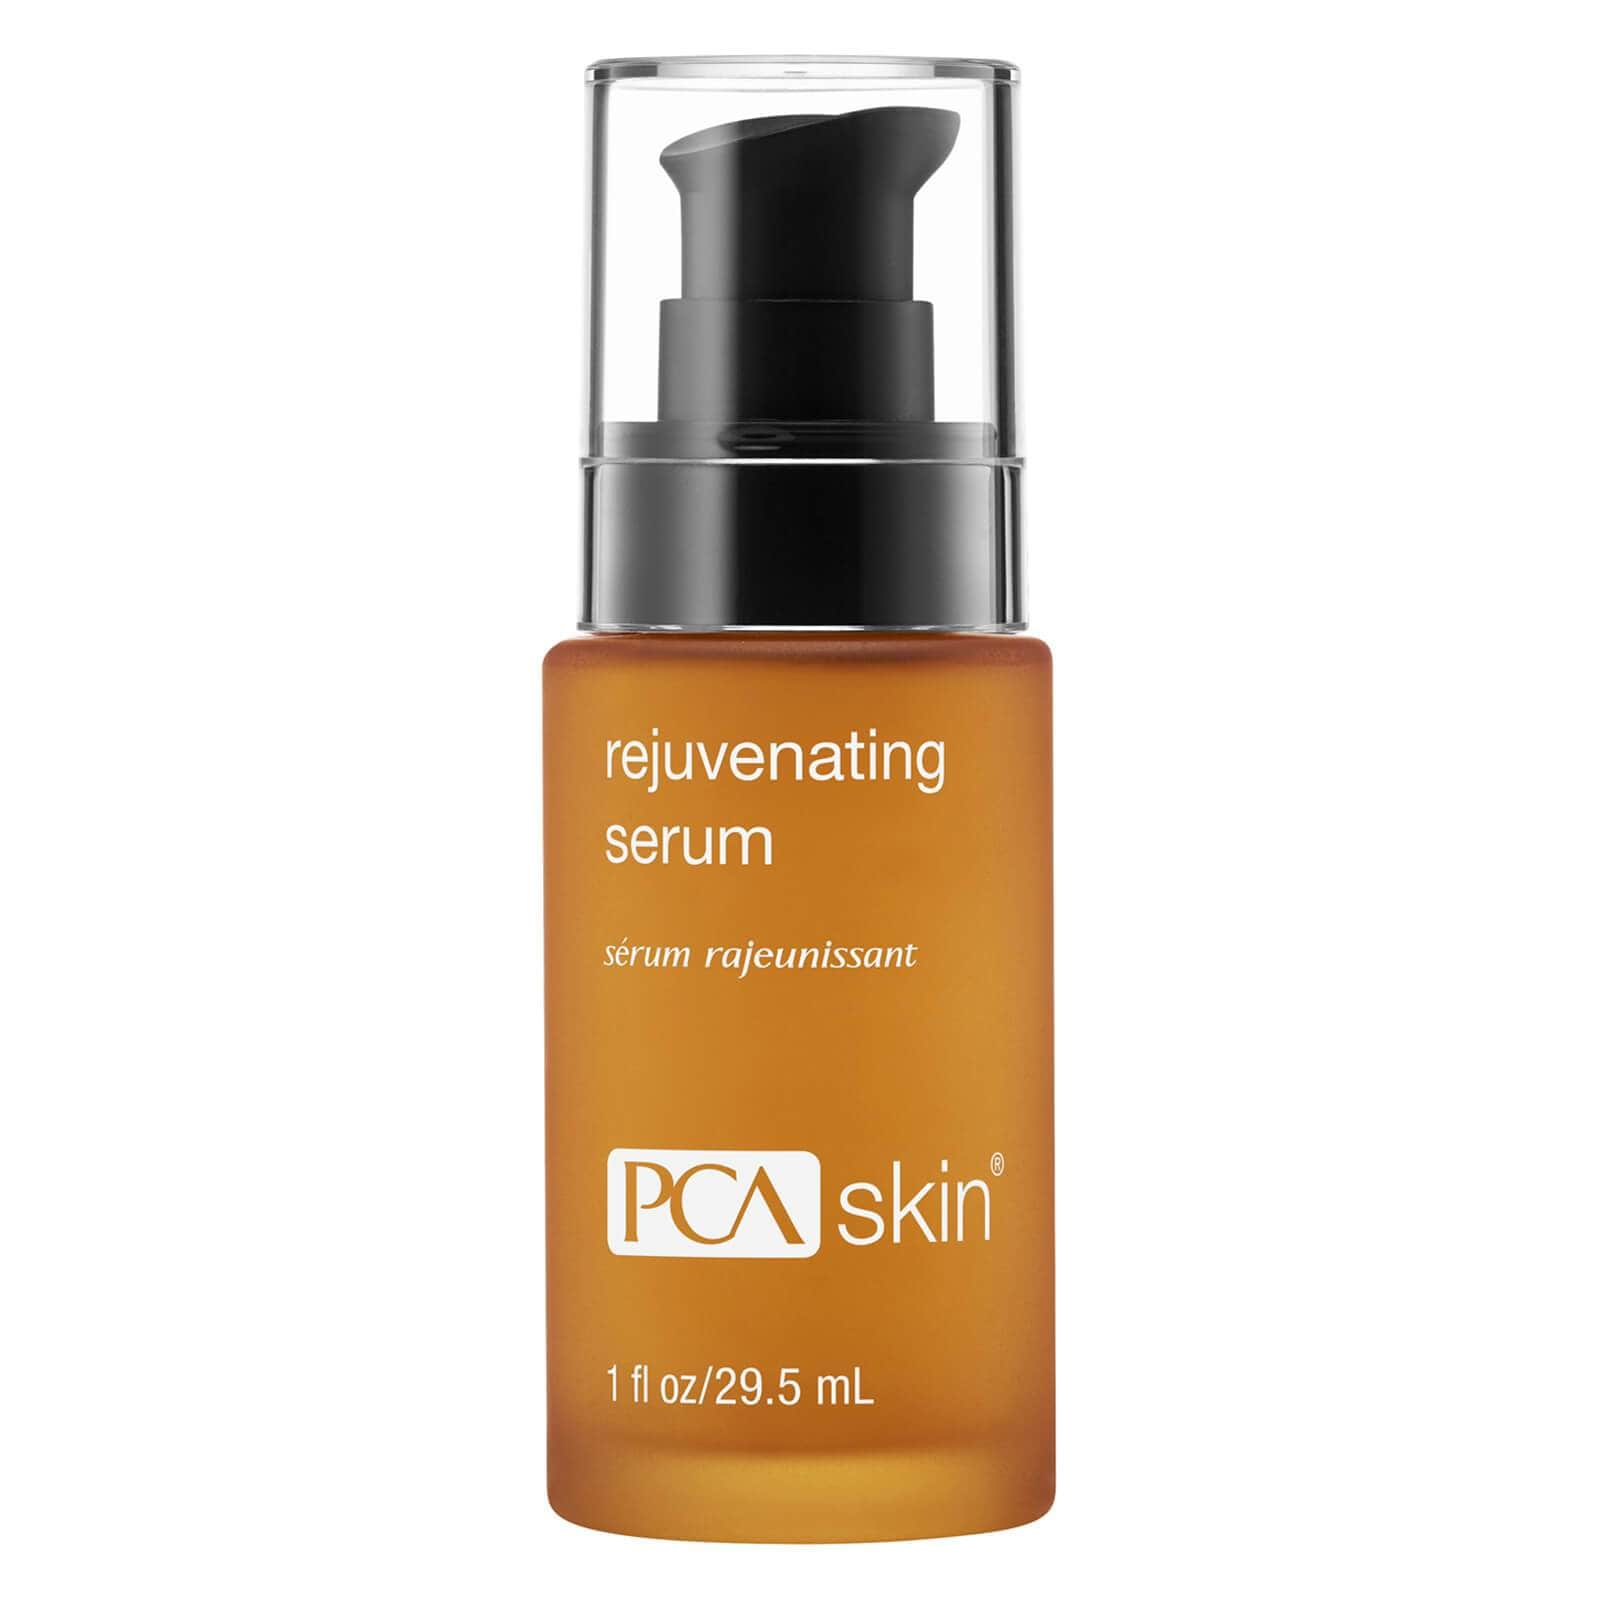 PCA SKIN Rejuvenating Serum 1 fl. oz.